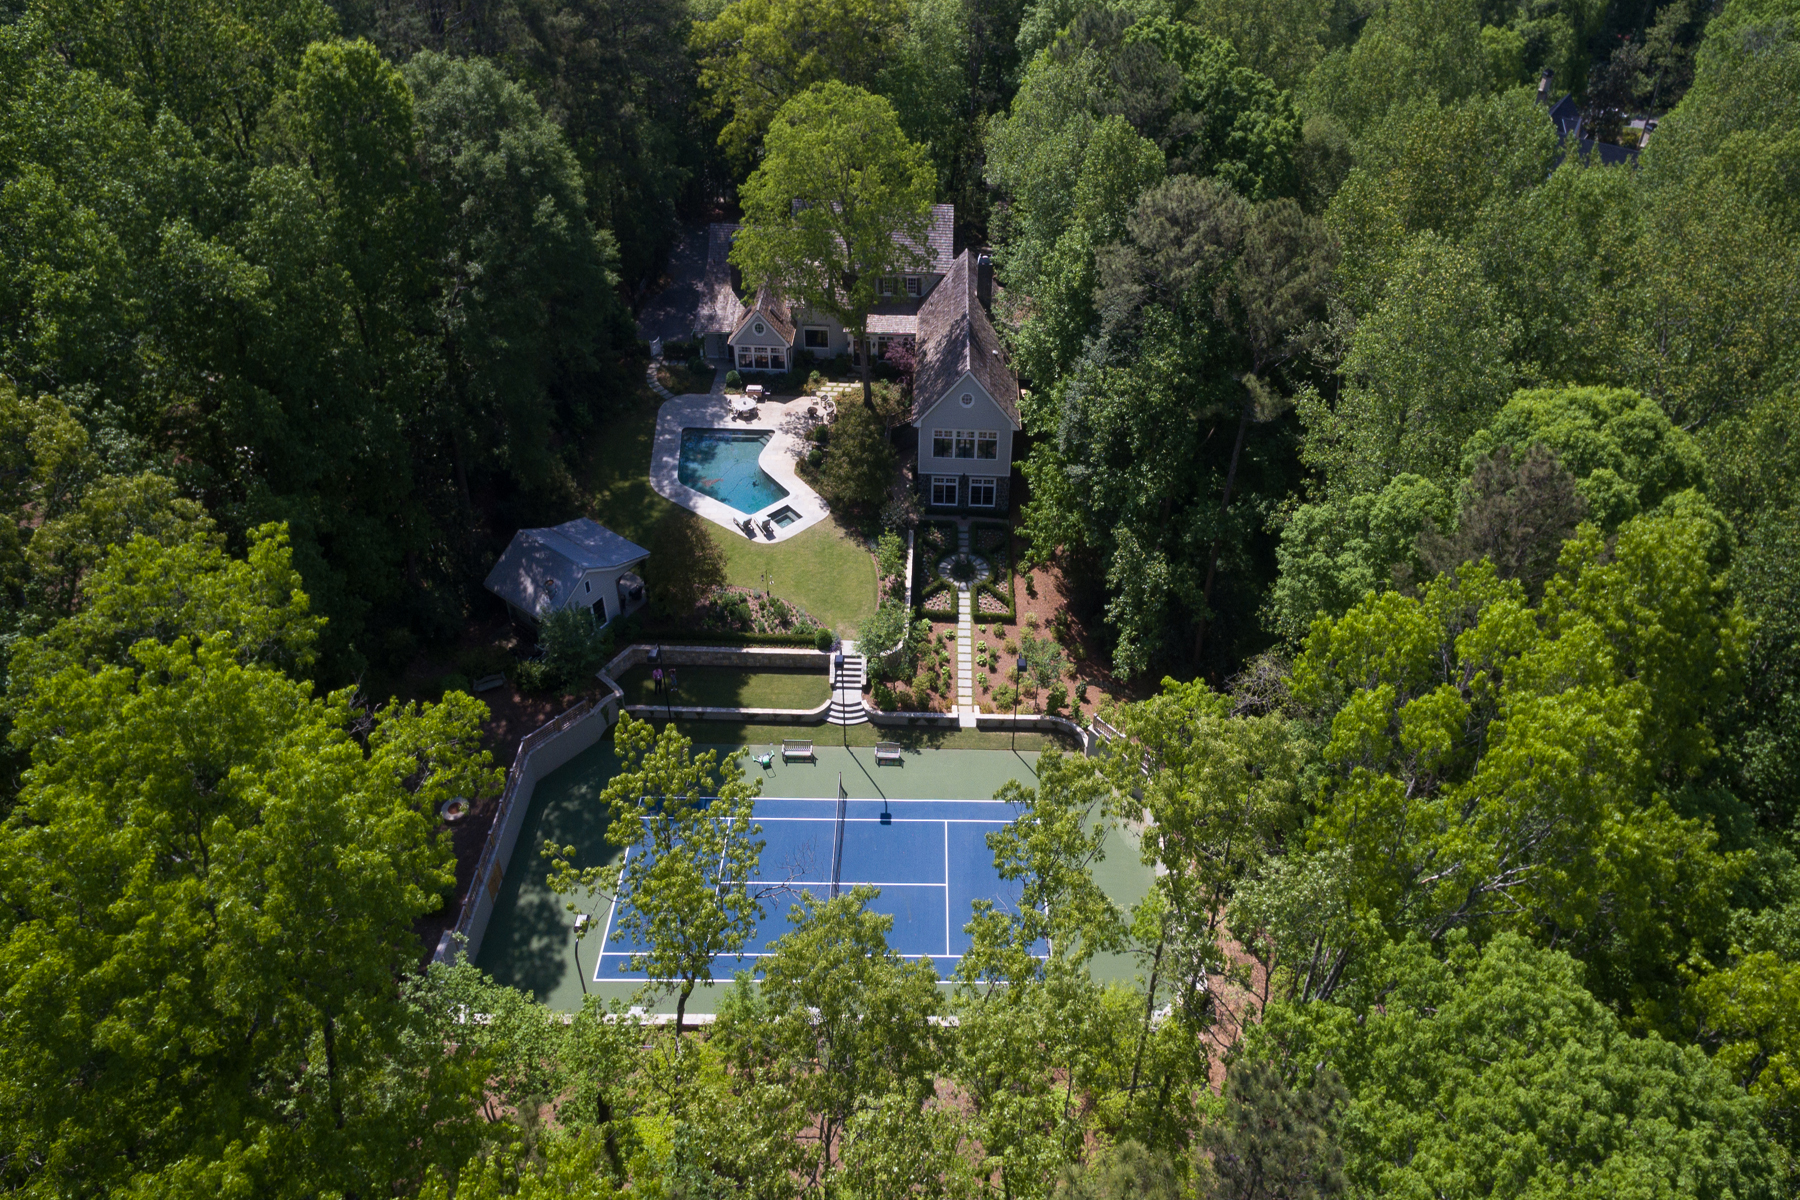 Casa para uma família para Venda às Amazing 4.86 Acre Estate Property With Lighted Tennis Court And Pool 4000 Conway Valley Road NW, Buckhead, Atlanta, Geórgia, 30327 Estados Unidos